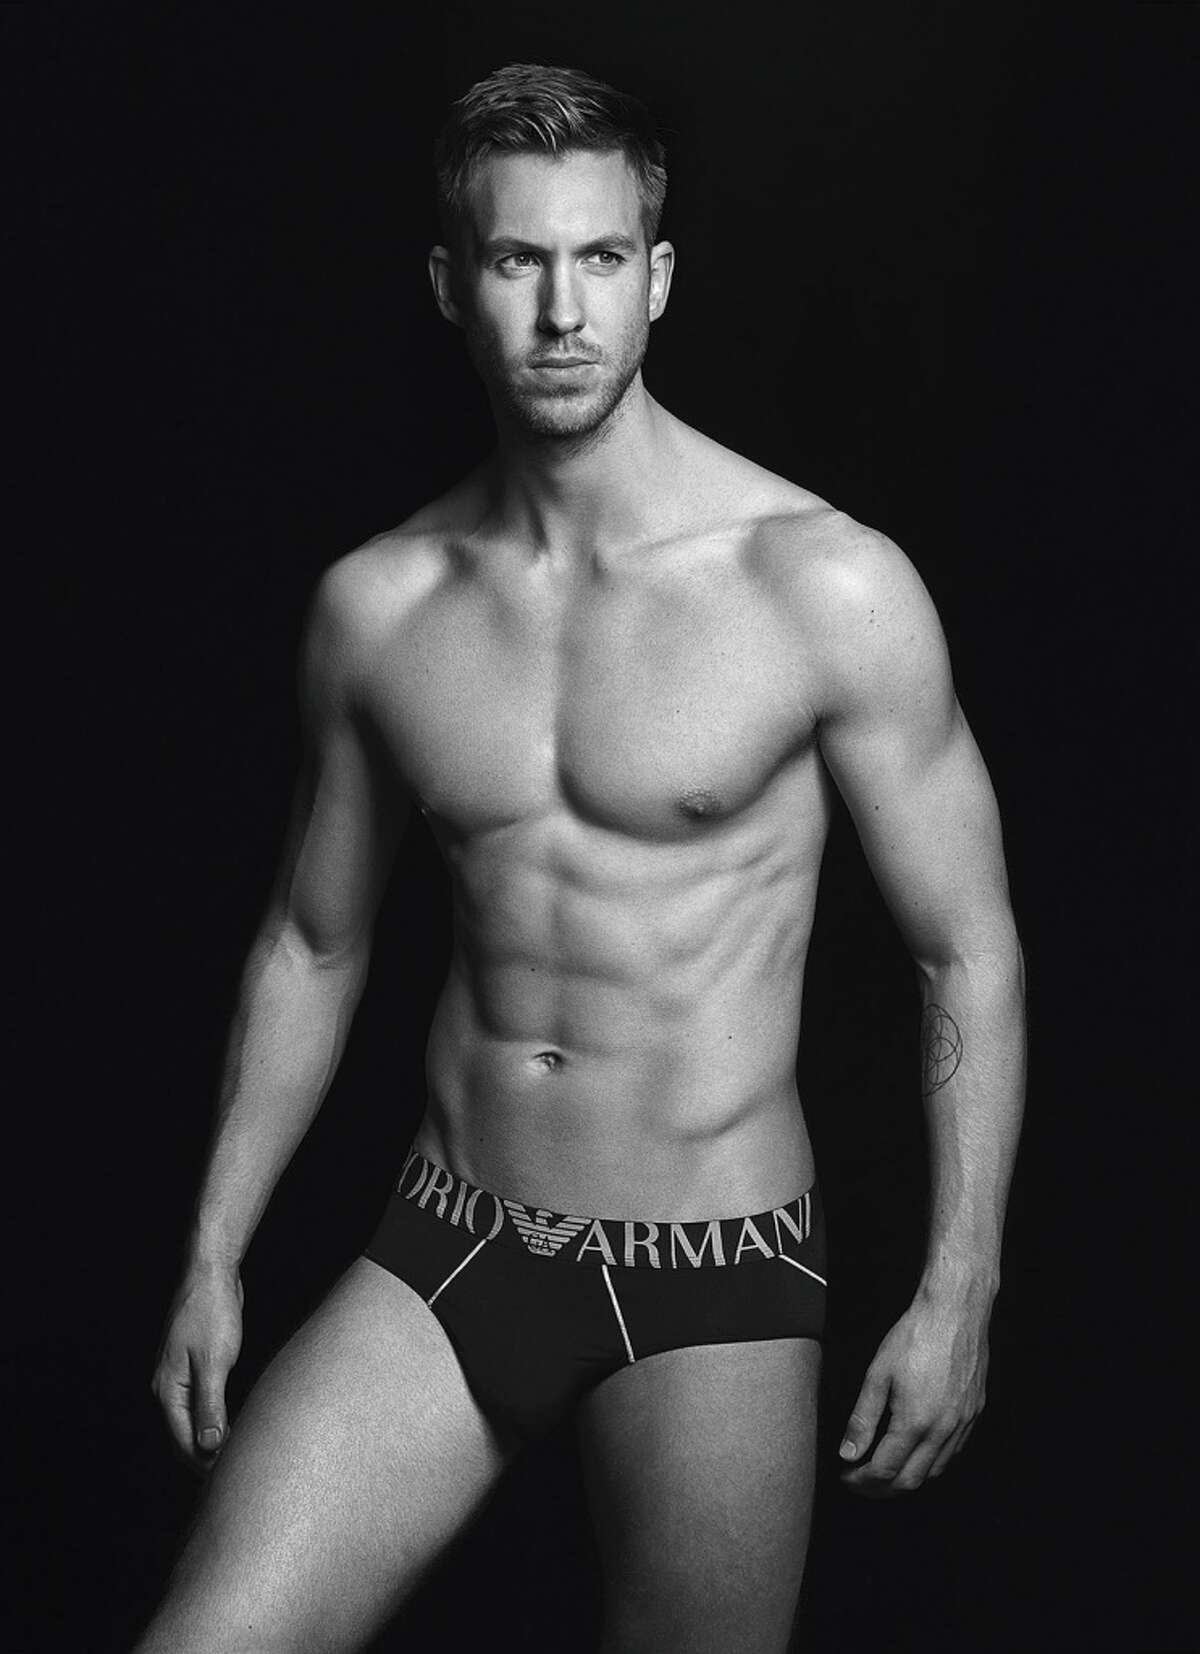 A chiseled Calvin Harris, also Taylor Swift's boyfriend, shows off his pecs, abs and more in Emporio Armani underwear. Harris is the designer brand's model for its fall 2015/16 campaign. Both he and Taylor are Forbes magazine's 2015 highest paid couple, taking in jointly $146 million, a combination of record sales, appearances,concerts and endorsements.